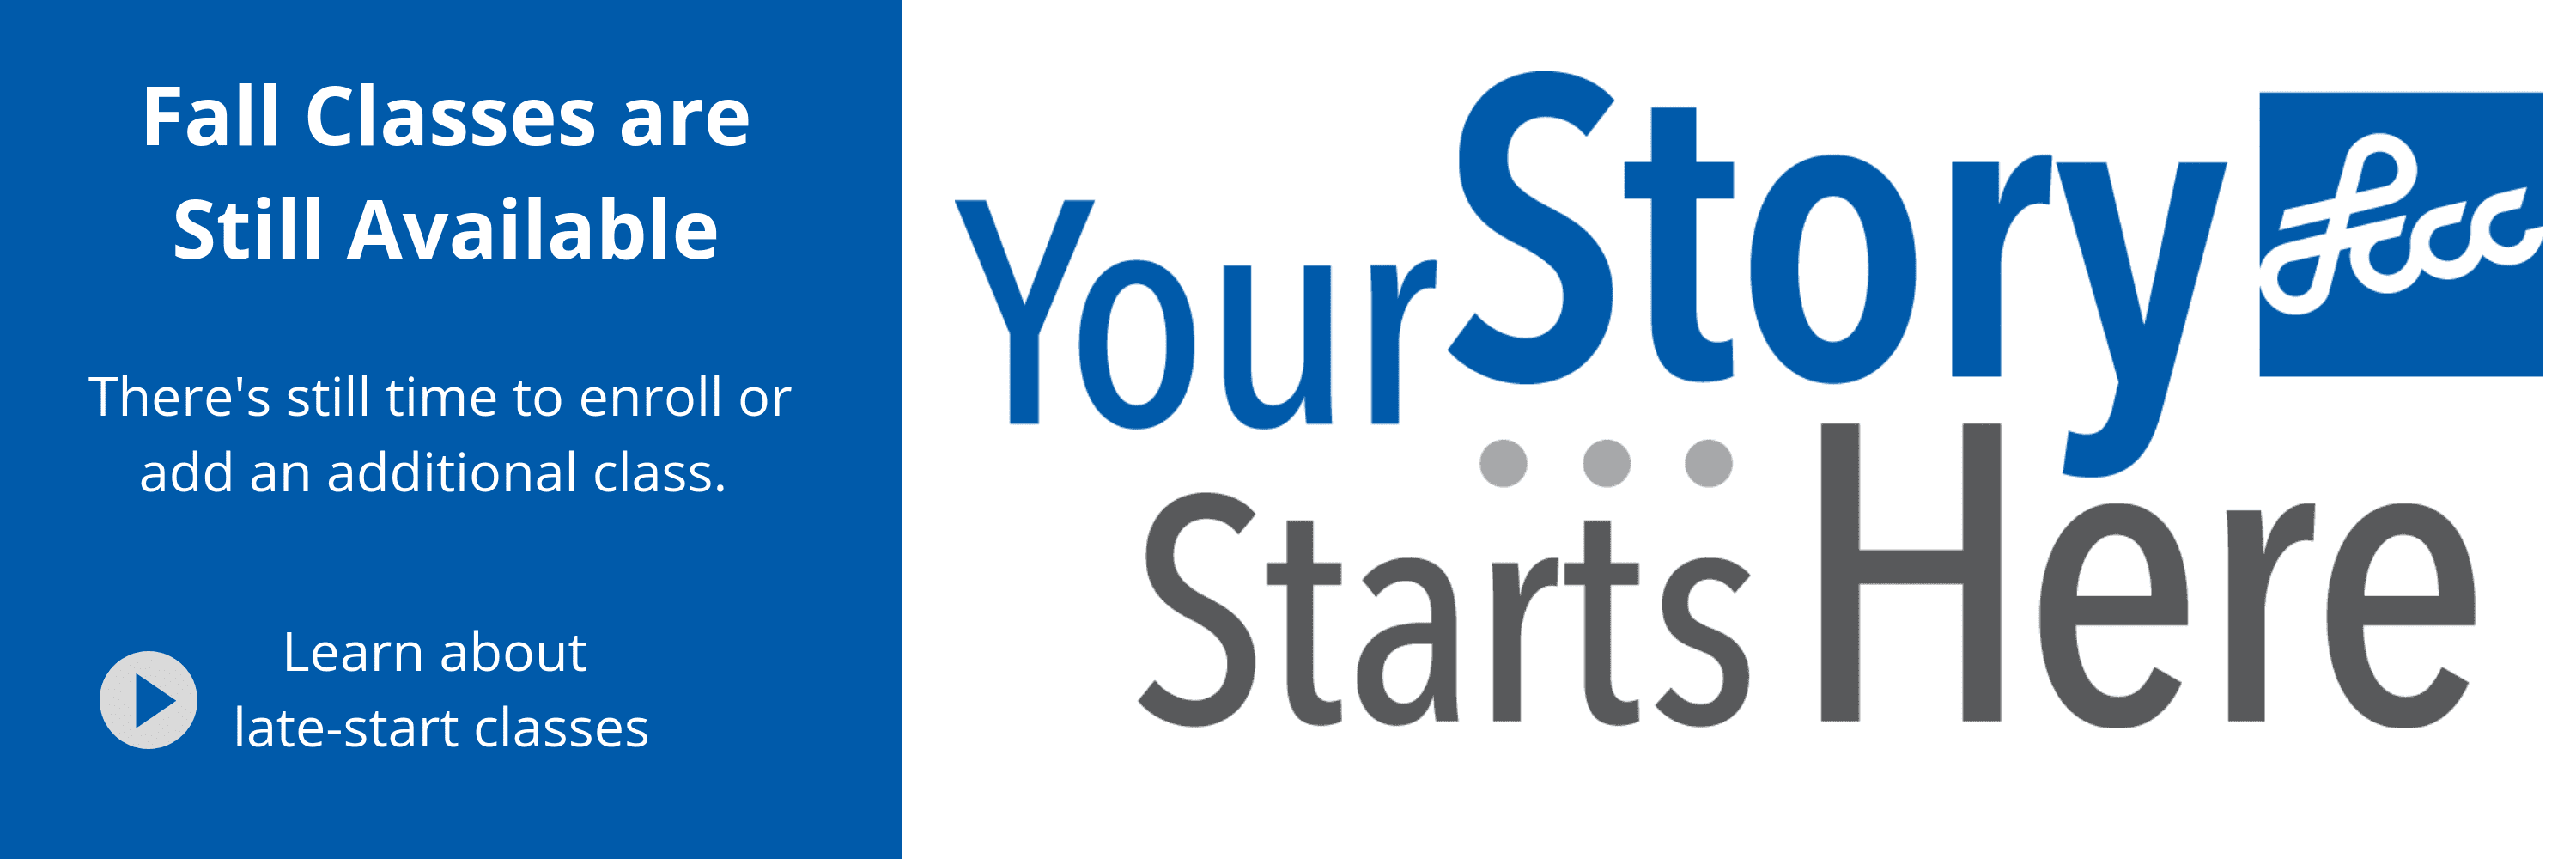 Your Story Late Start Fall 2018 3